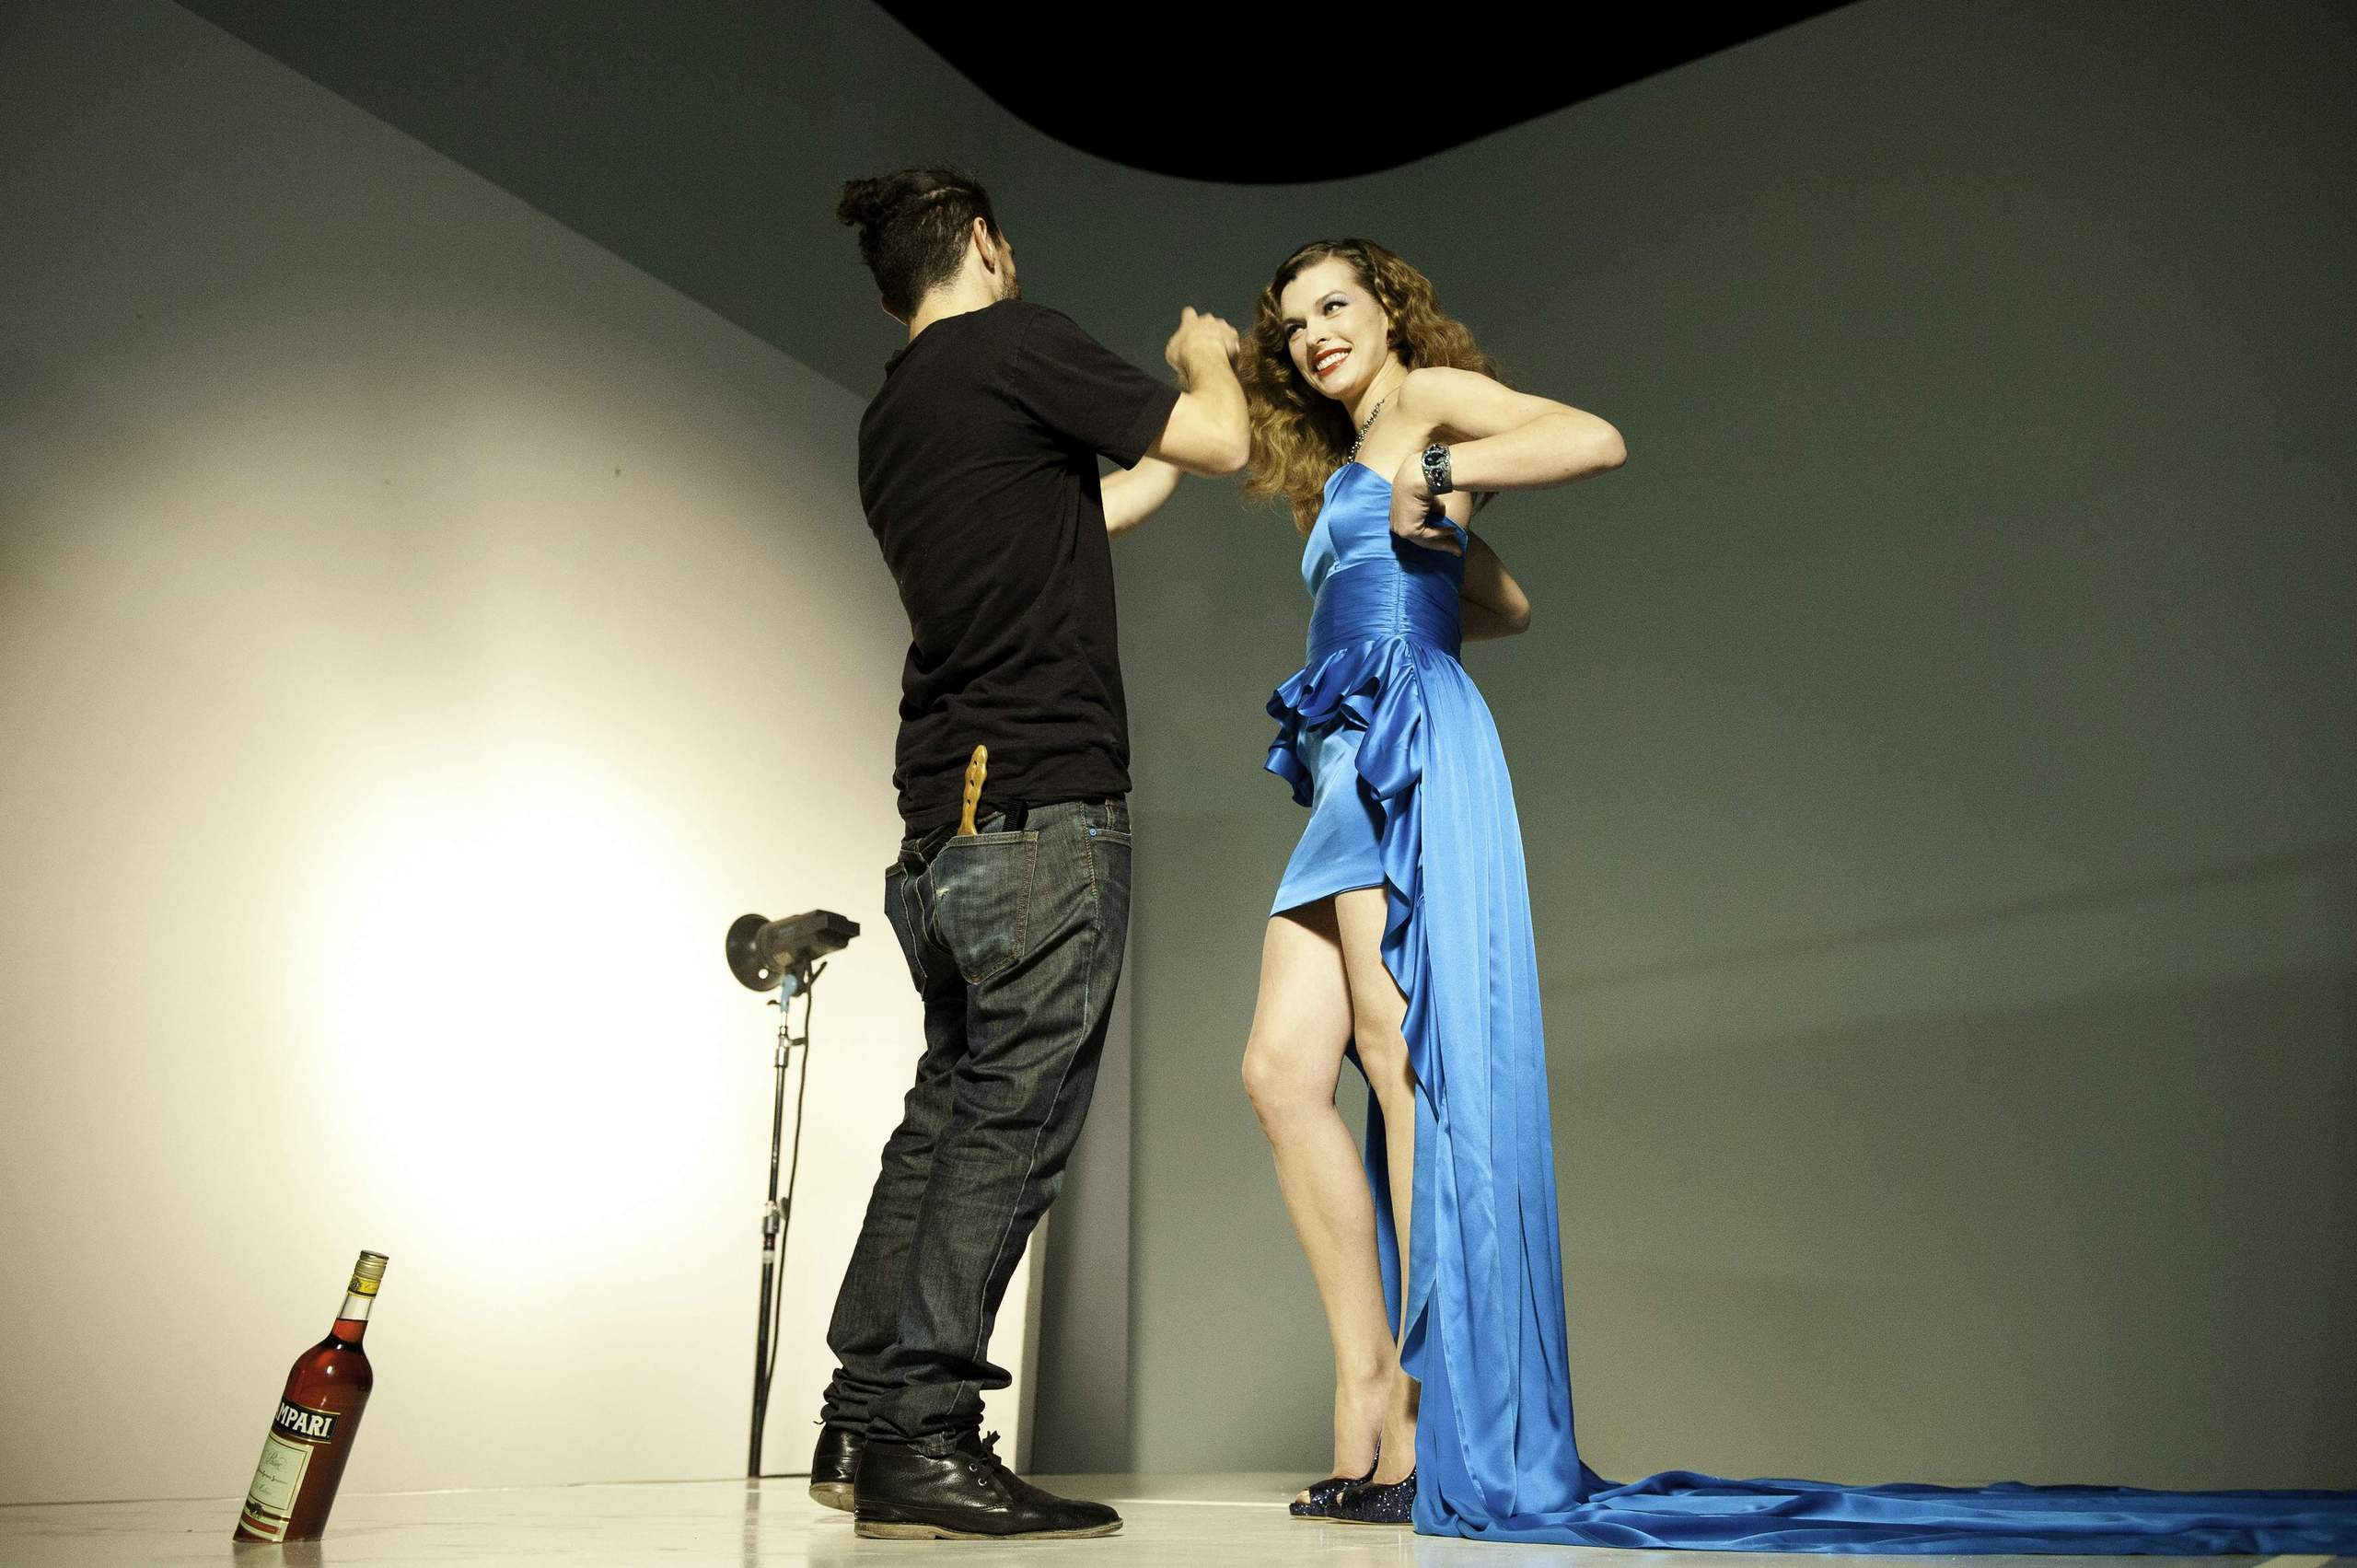 Campari Calendar Photoshoot - Behind the Scenes